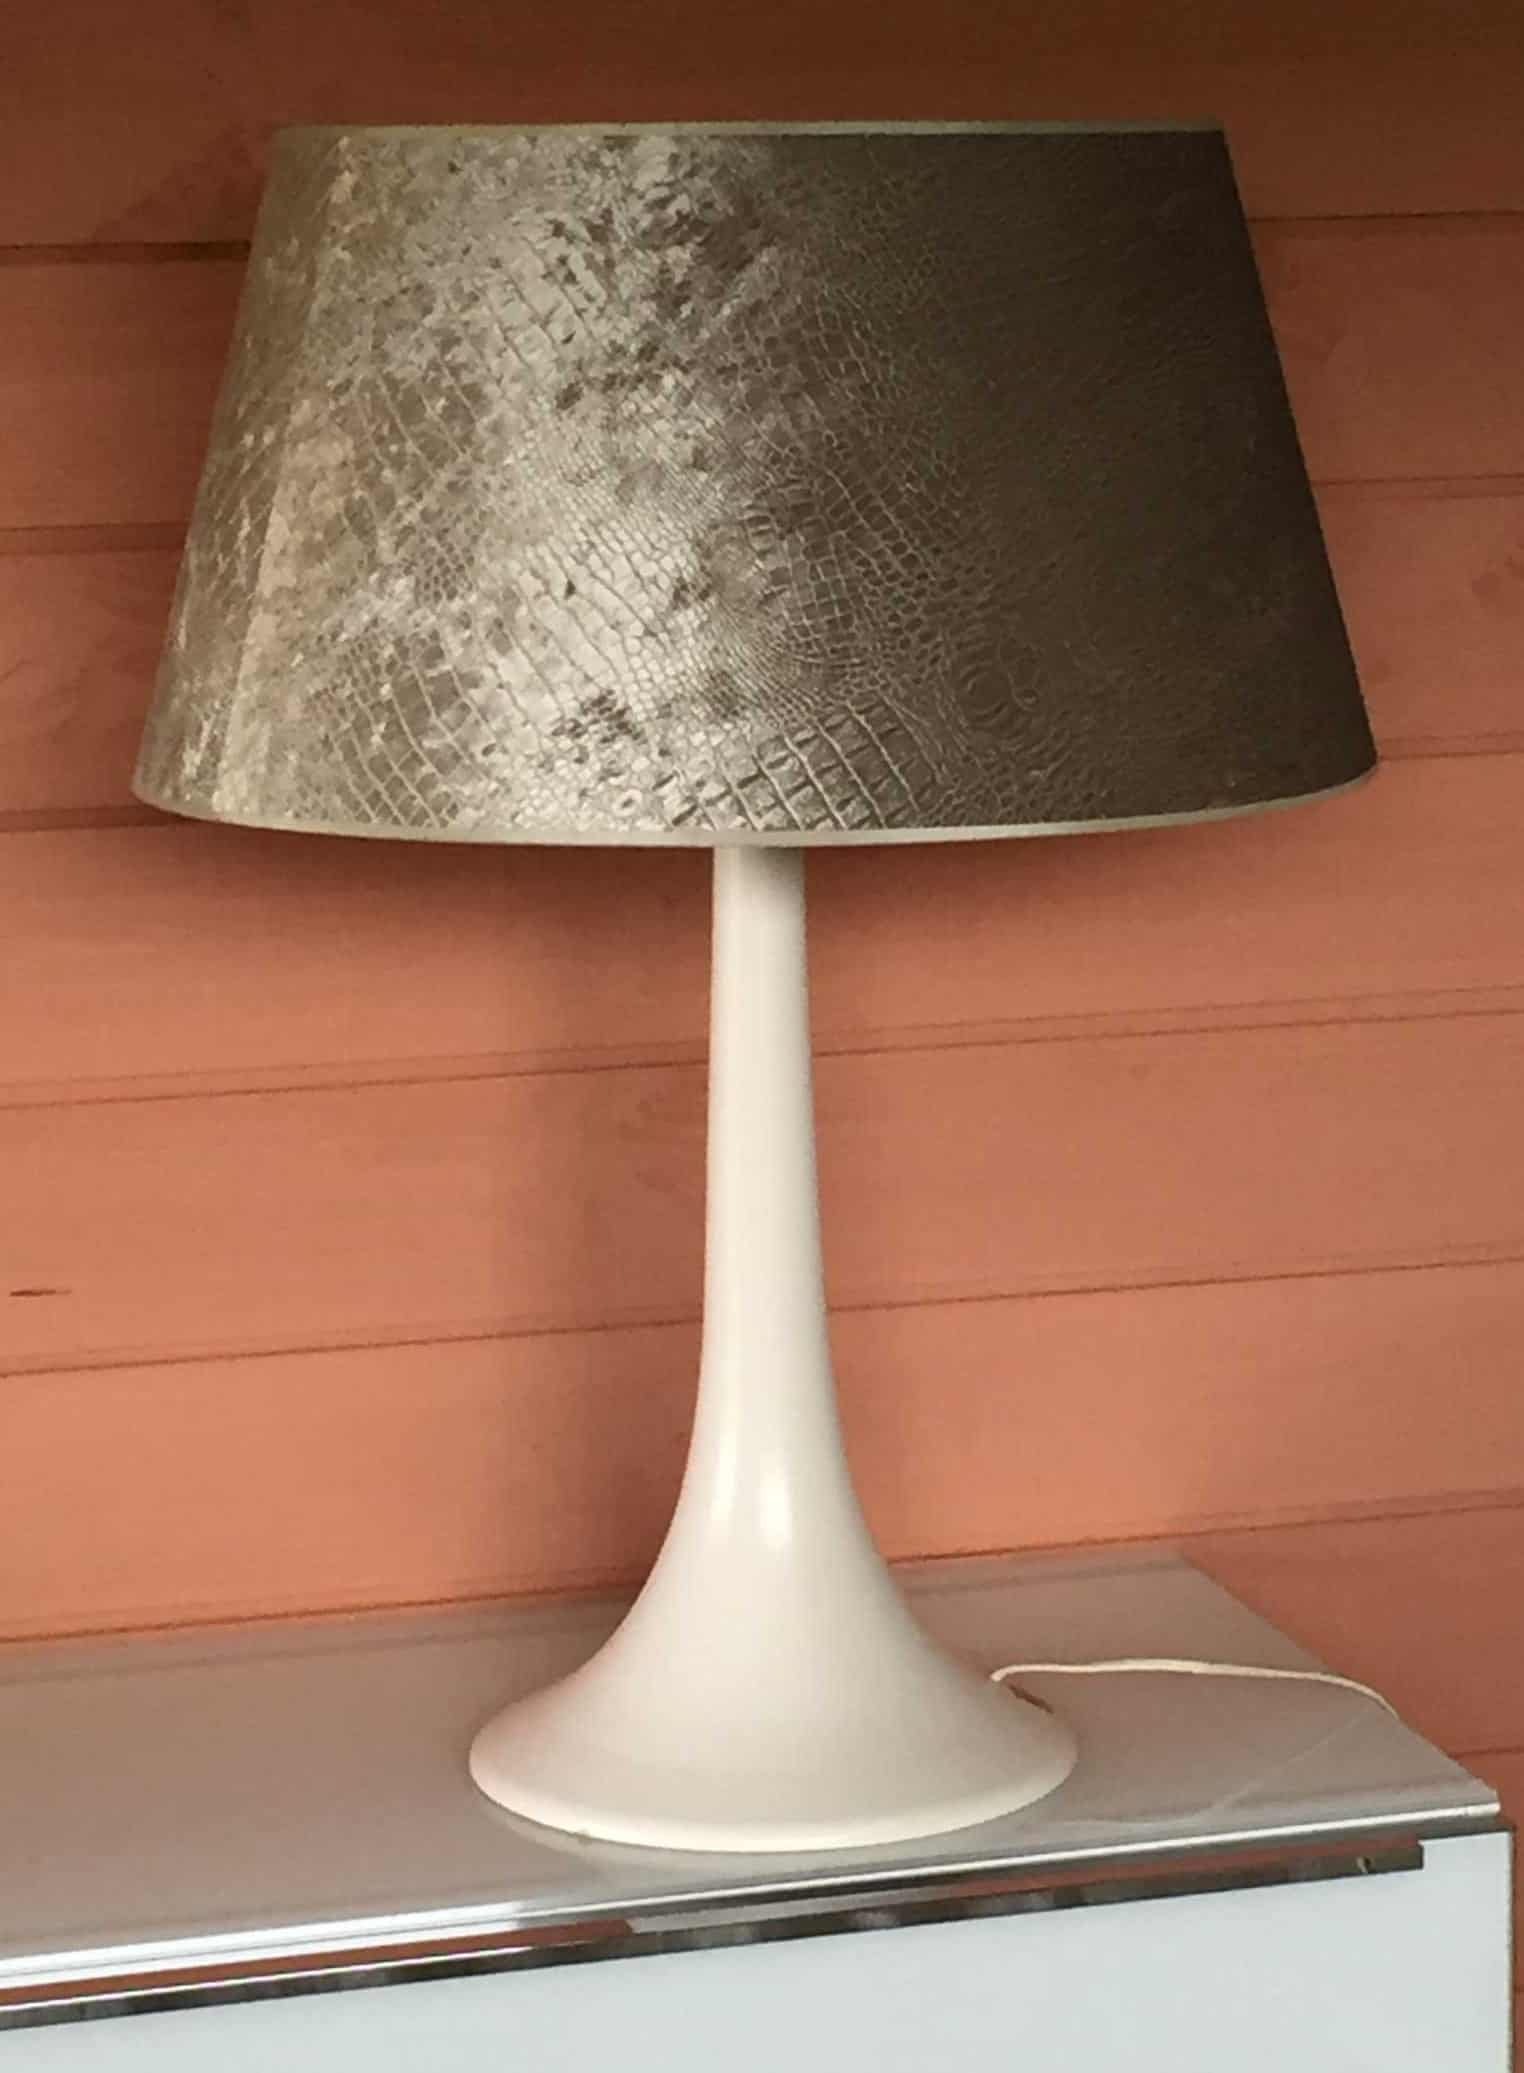 Lampe blanche design brocante decoration - Lampe design blanche ...